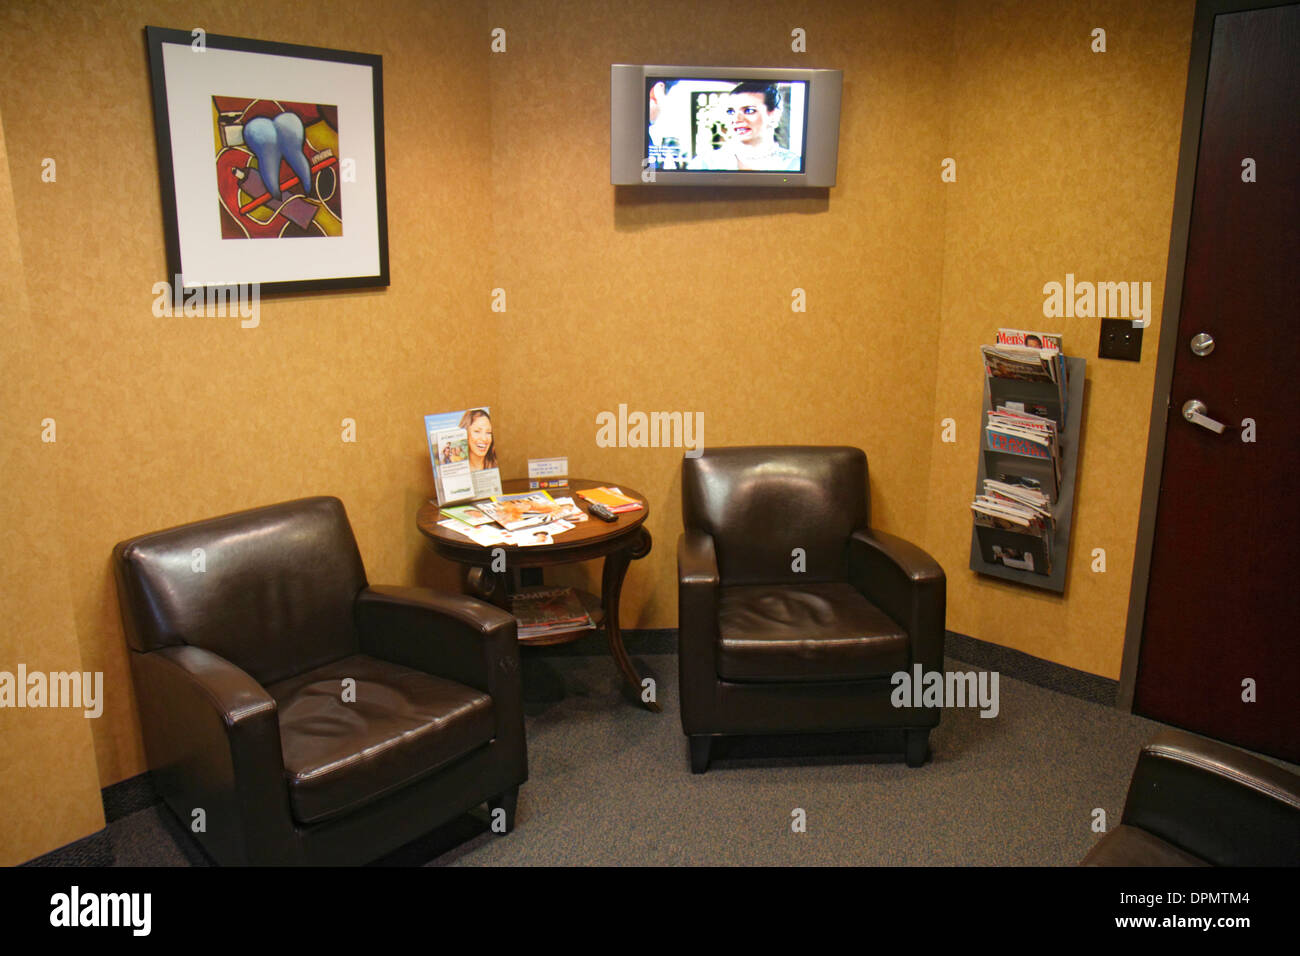 Miami Beach Florida Dentistu0027s Office Waiting Room Area Furniture Chairs  Flat Panel TV Television